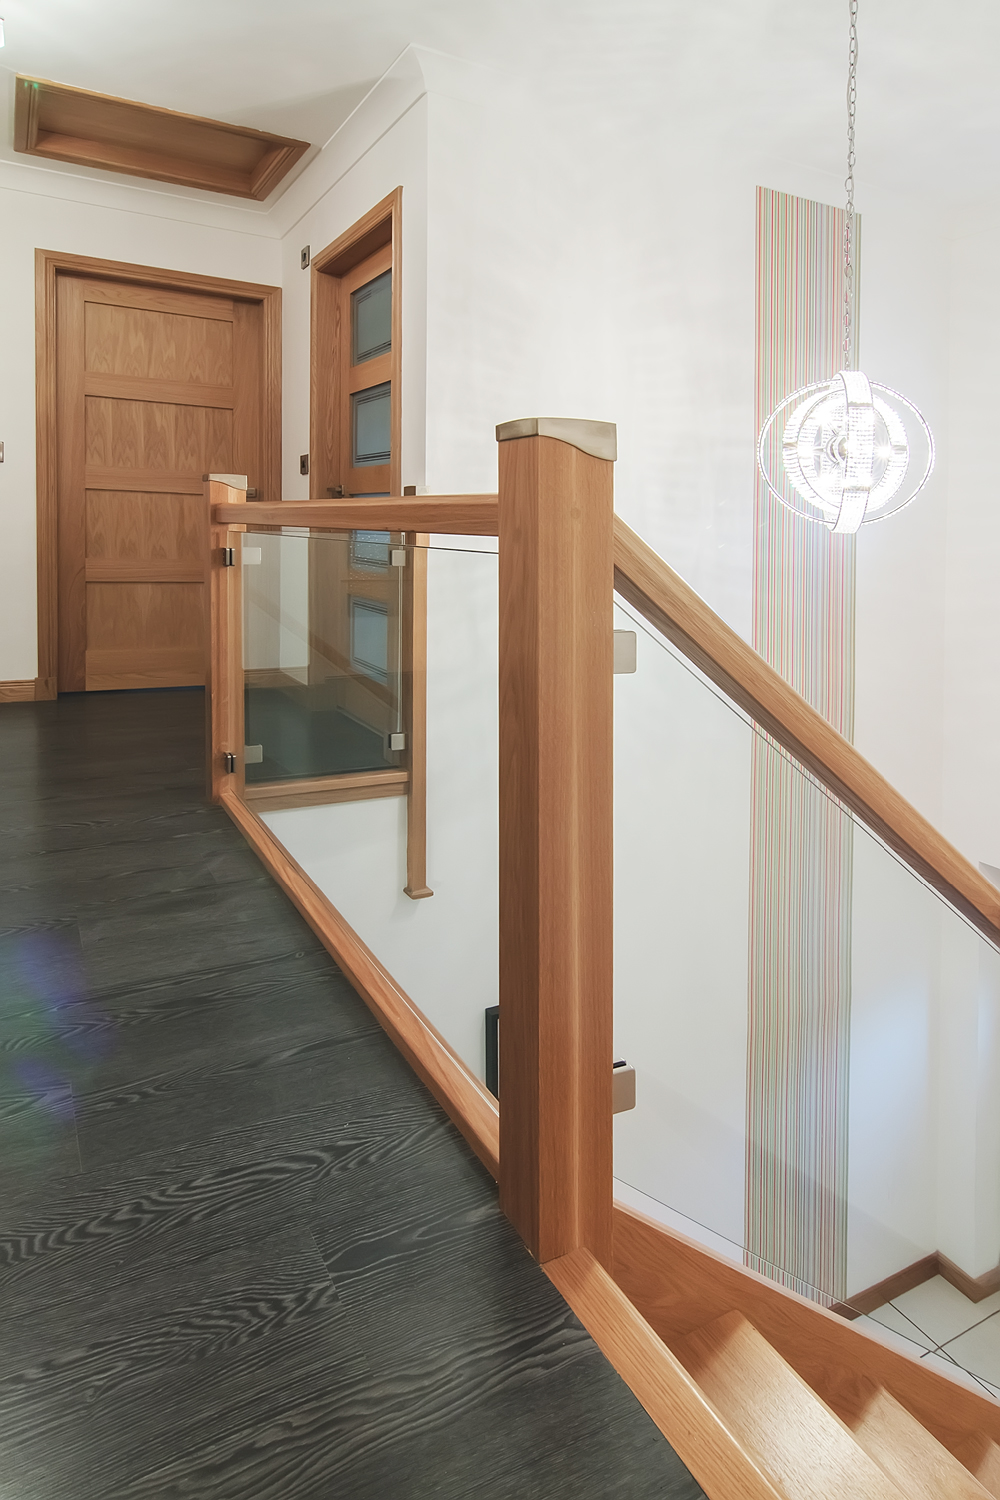 www.stockwell-ltd.co.uk   White oak o  pen-rise bottom winder stair   with brushed nickel riser rods and glass balustrade.